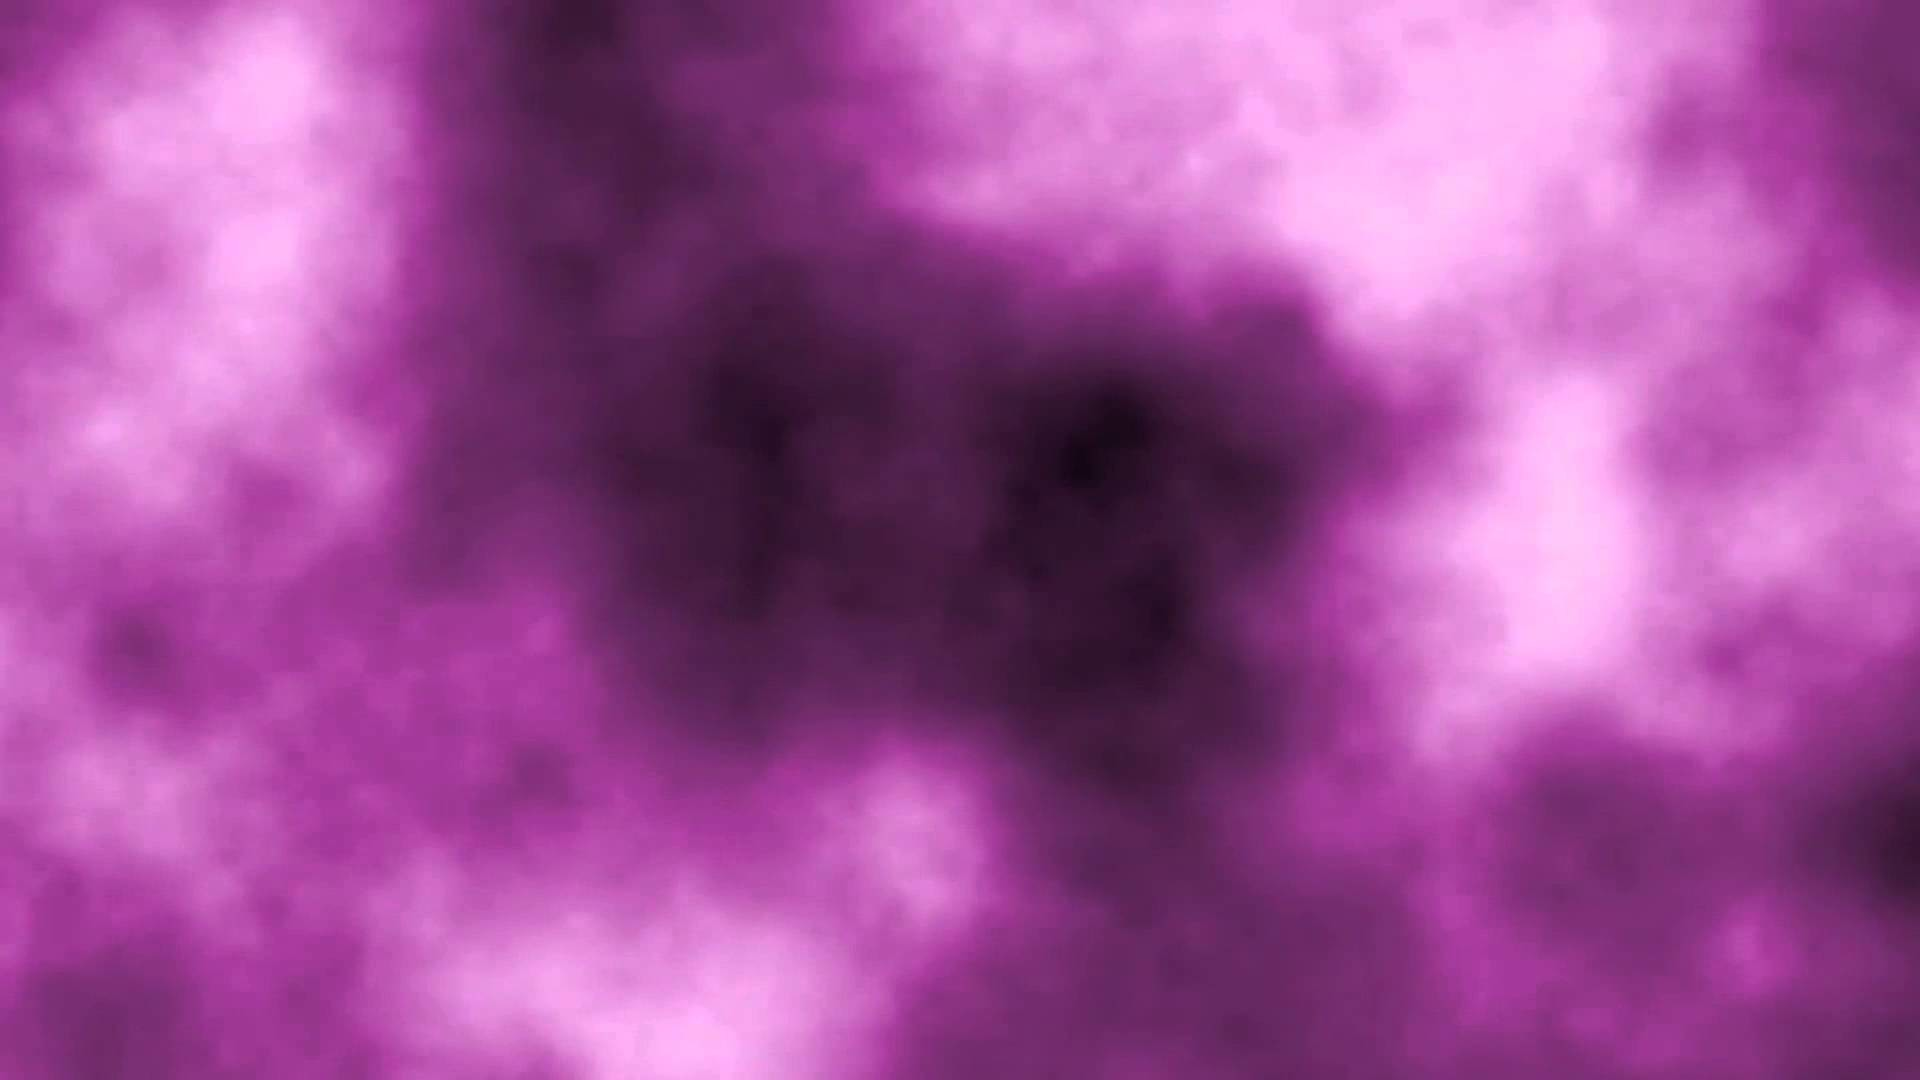 Res: 1920x1080, Light & Pink smoke Background ANIMATION FREE FOOTAGE HD